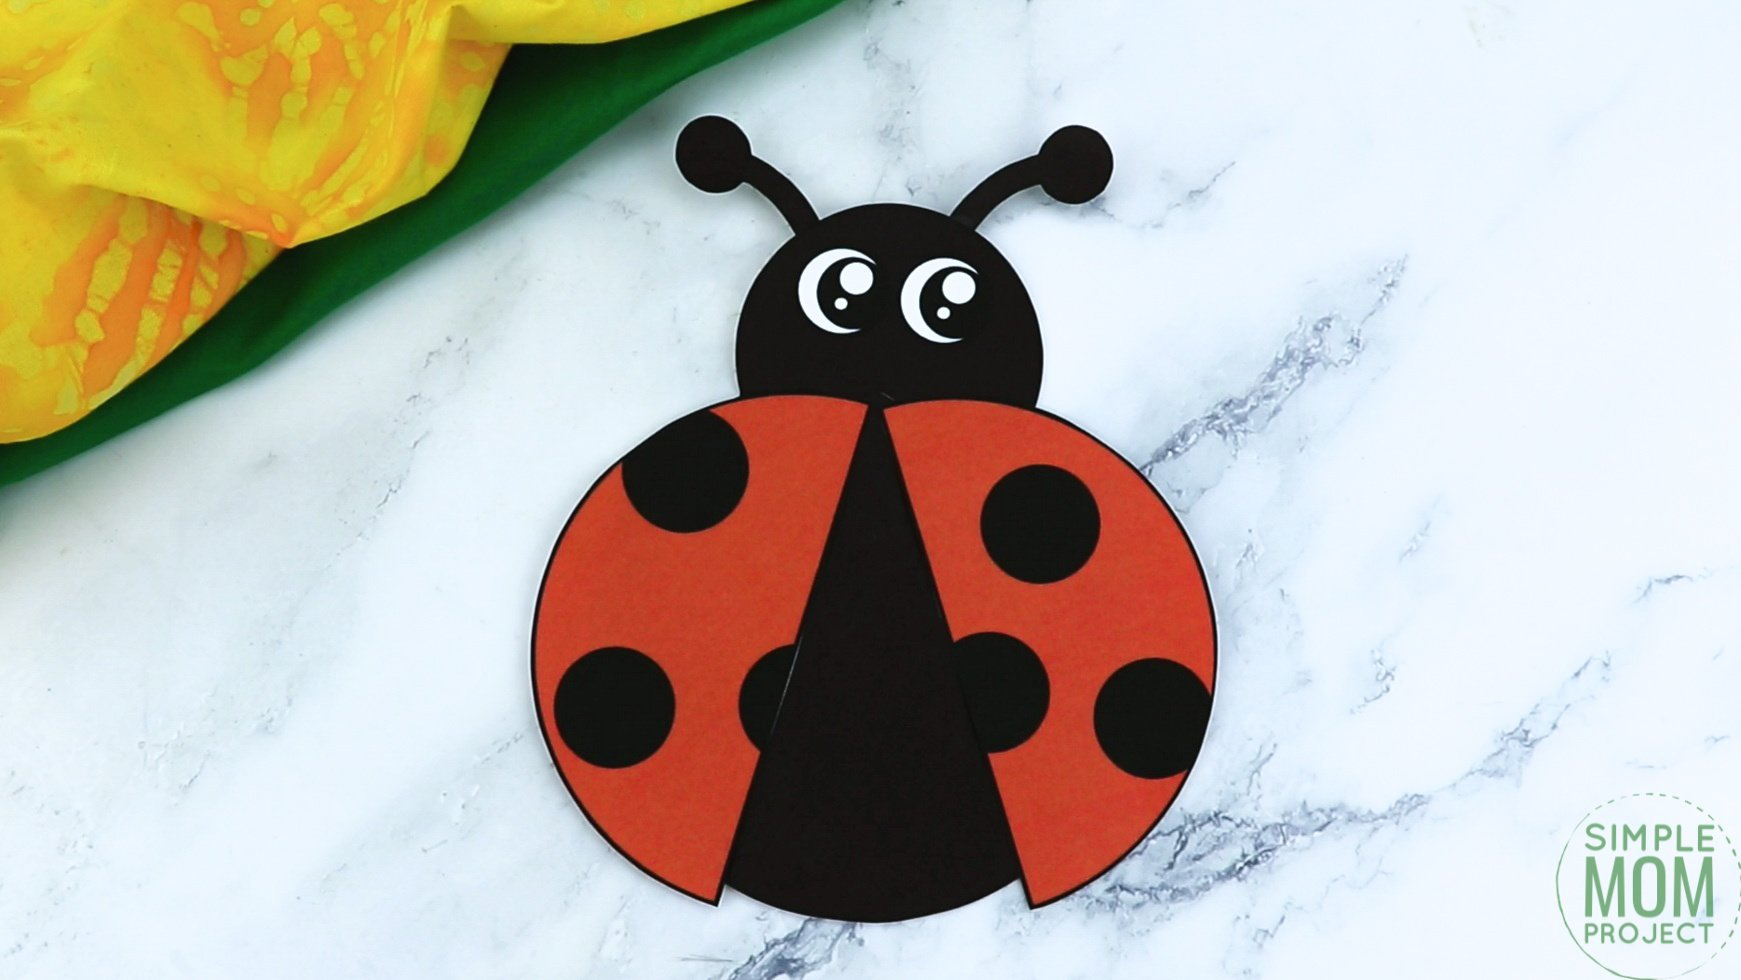 Free Printable Ladybug Craft for Kids, preschoolers and toddlers